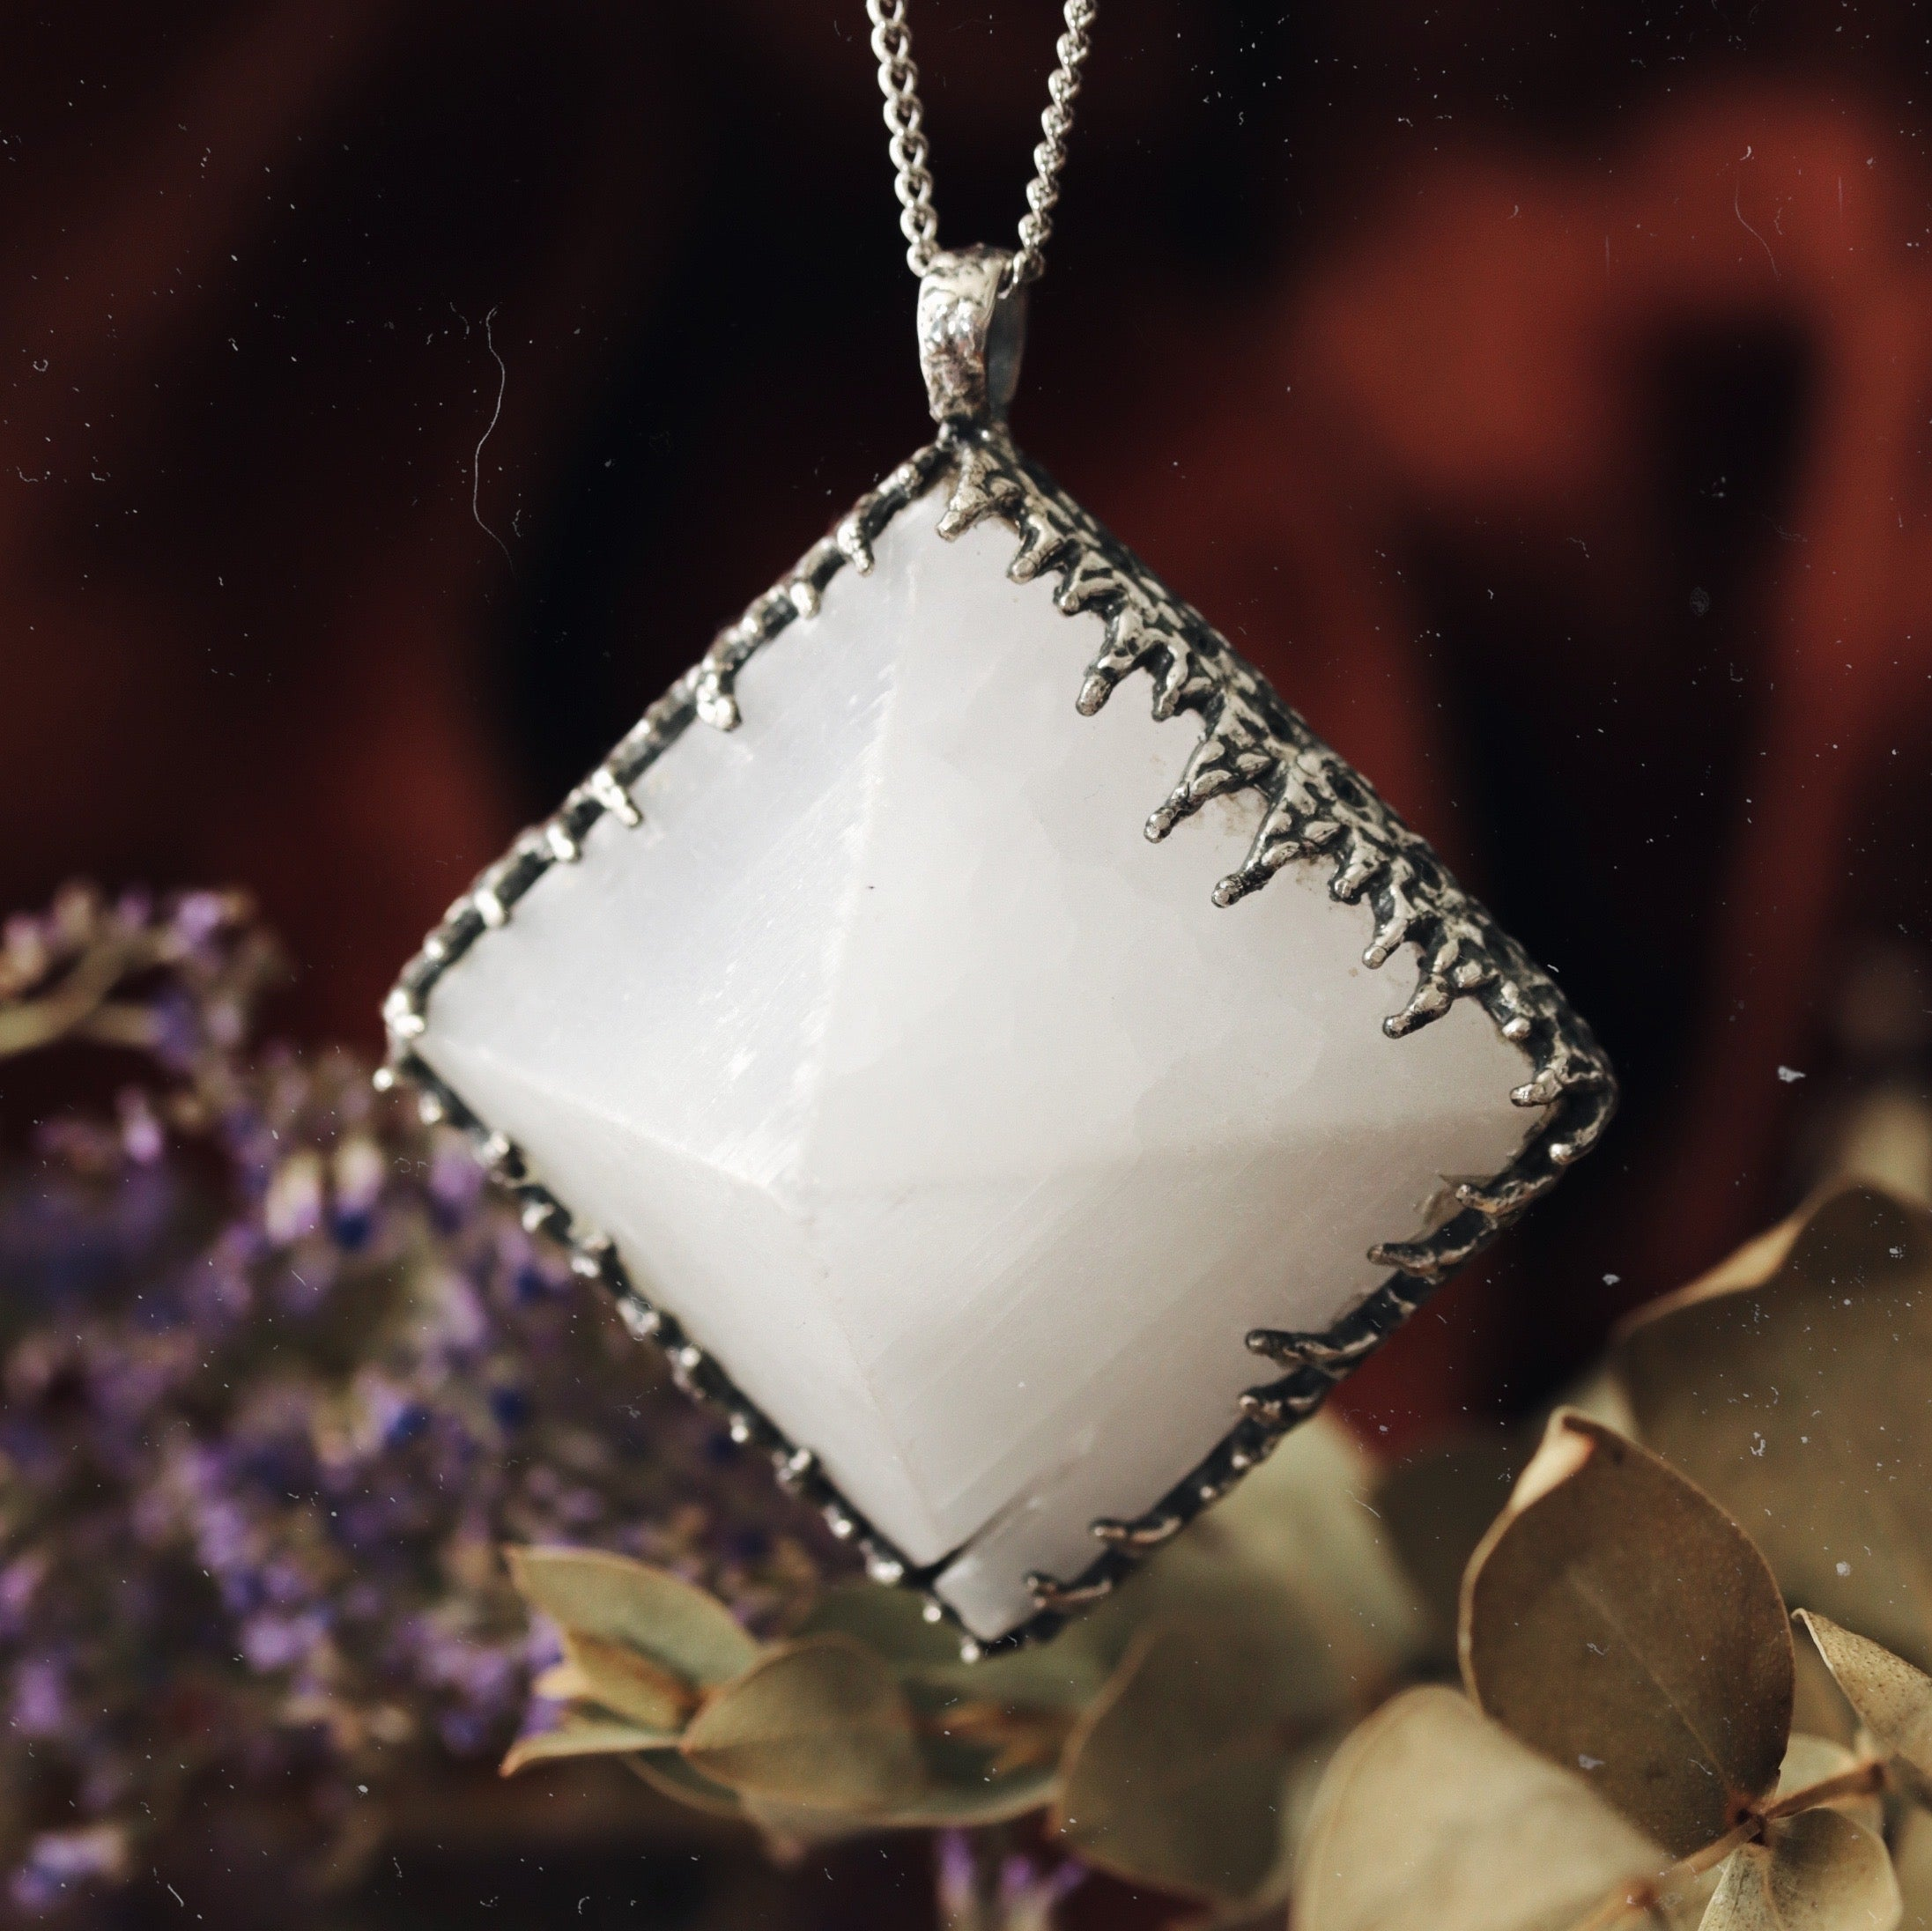 Freyr Selenite Icicle Crystal Pyramid Necklace #04